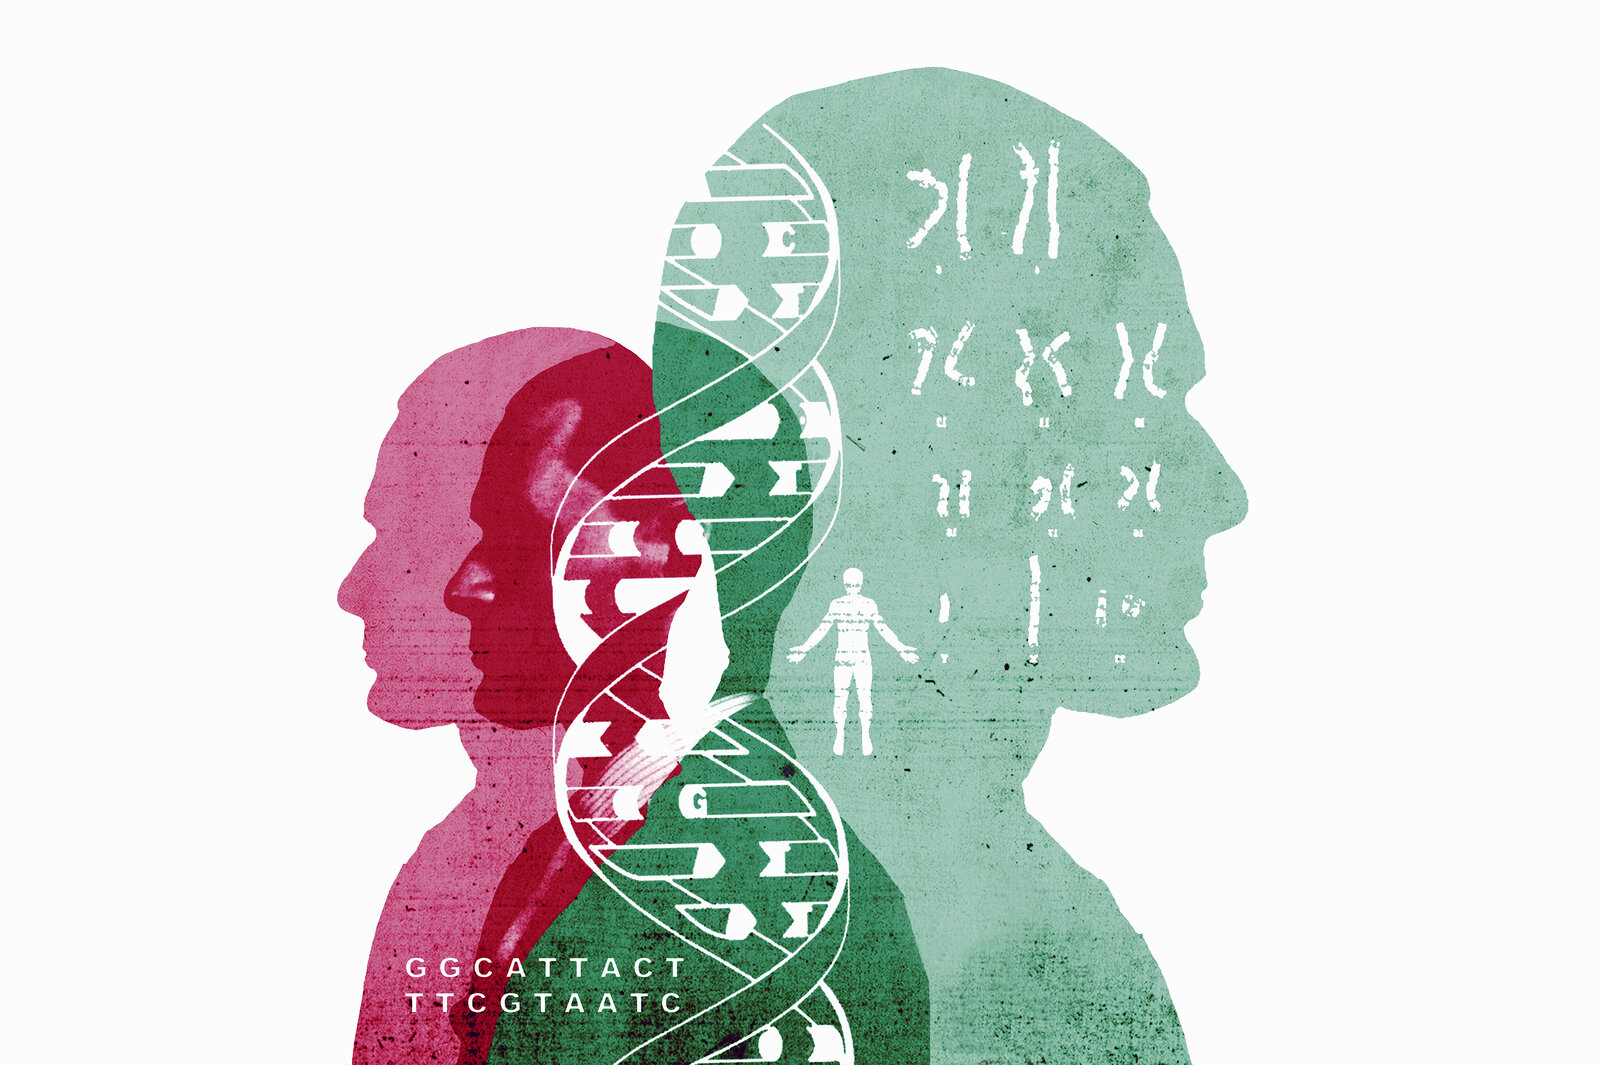 Chromosomes and double helix over silhouettes of man